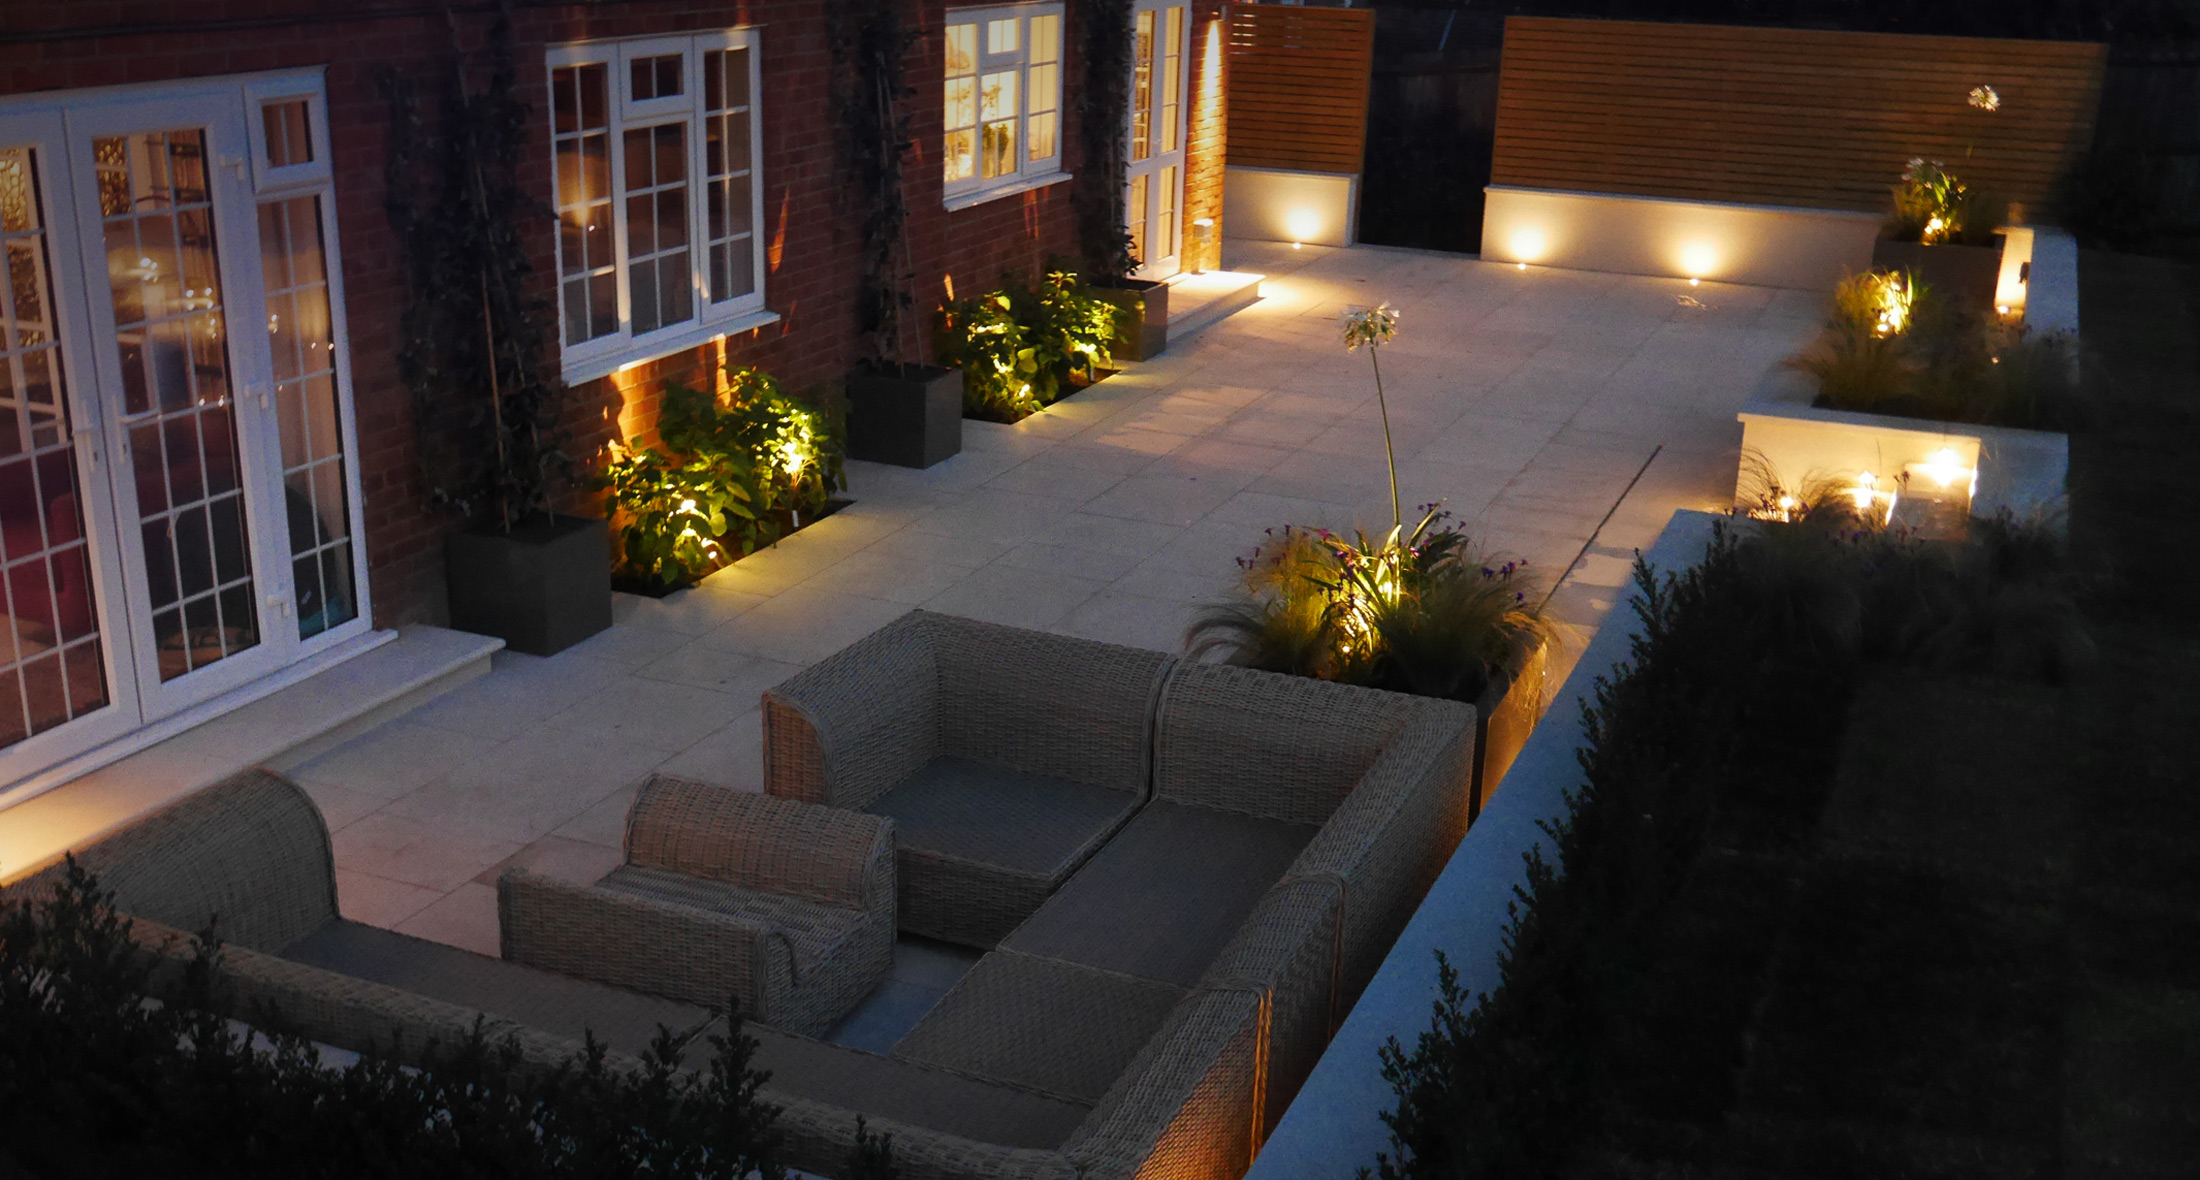 garden lighting - Tunbridge Wells area - Slate Grey on garden outdoor design, garden landscape design, garden design ideas, garden painting design, garden stage design, garden graphic design, garden tile design, garden bathroom design, garden beds design, garden interior design, garden catering, garden layout design, garden floor design, garden art design, garden color design, garden logos design, garden architecture design, garden home design, garden benches design, garden set design,